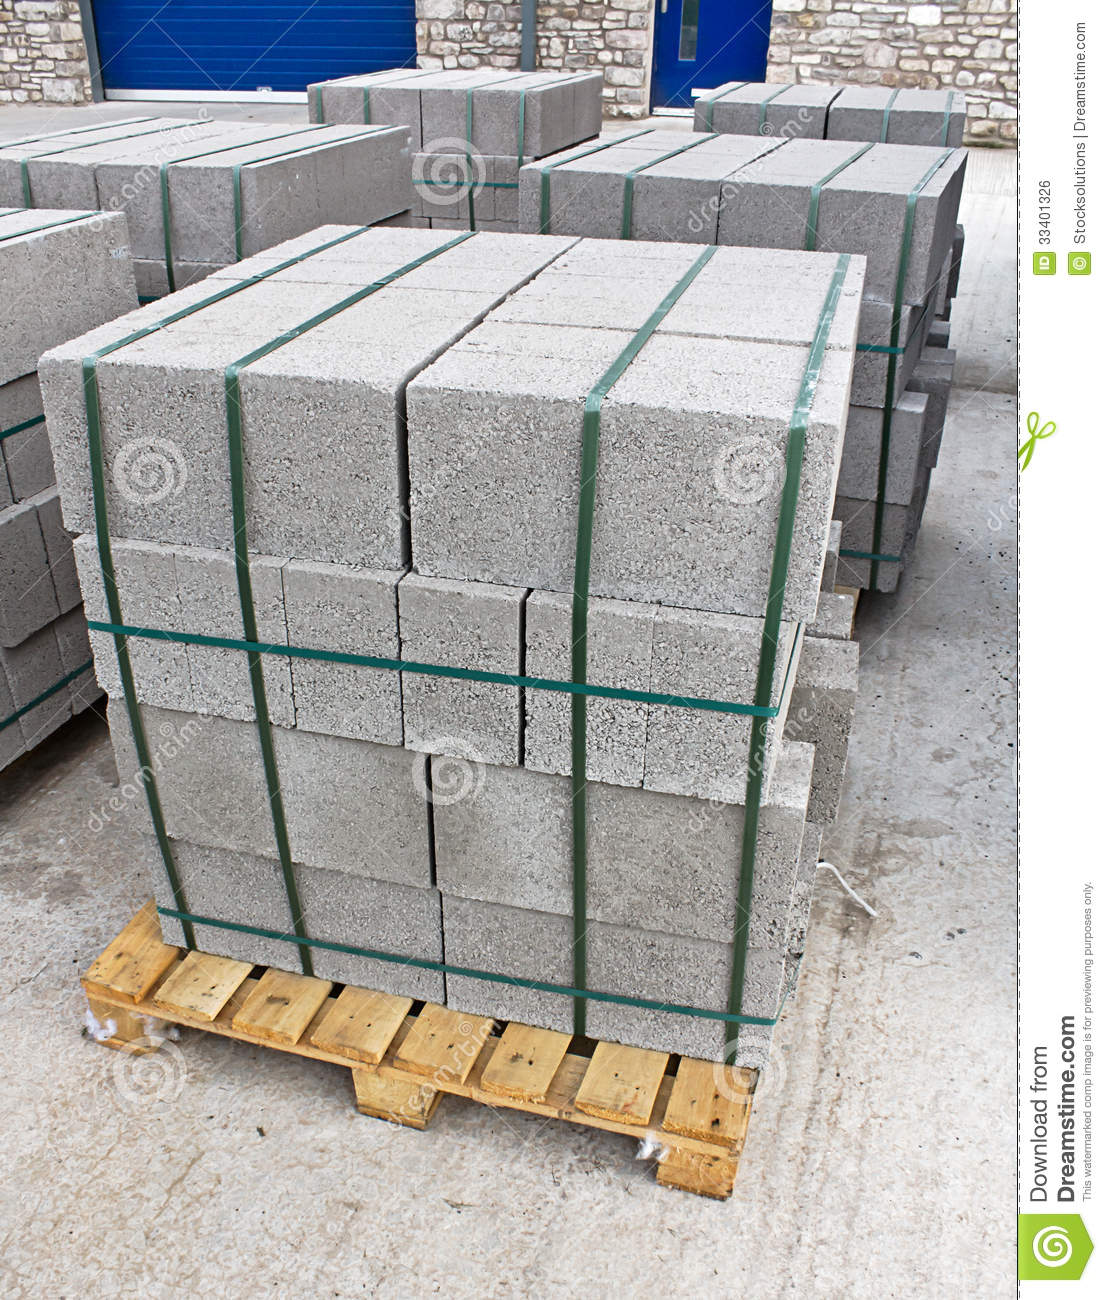 Pallet Of Breeze Blocks Royalty Free Stock Image - Image: 33401326